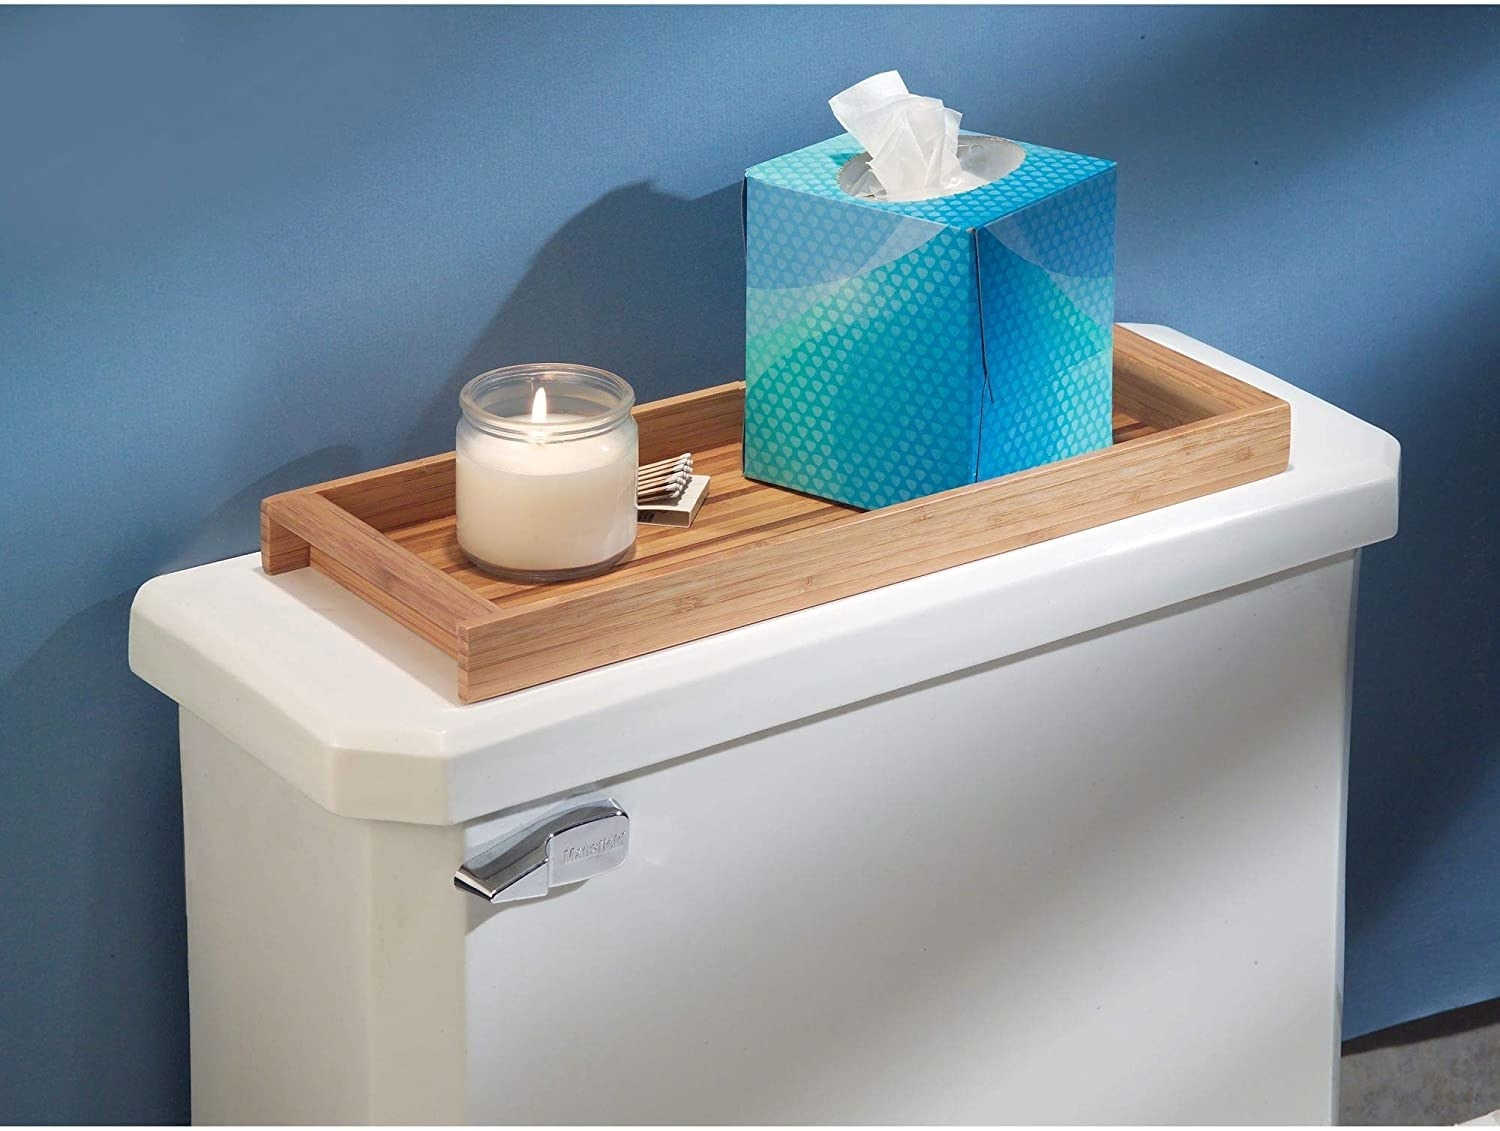 A wooden tray sitting on a toilet tank